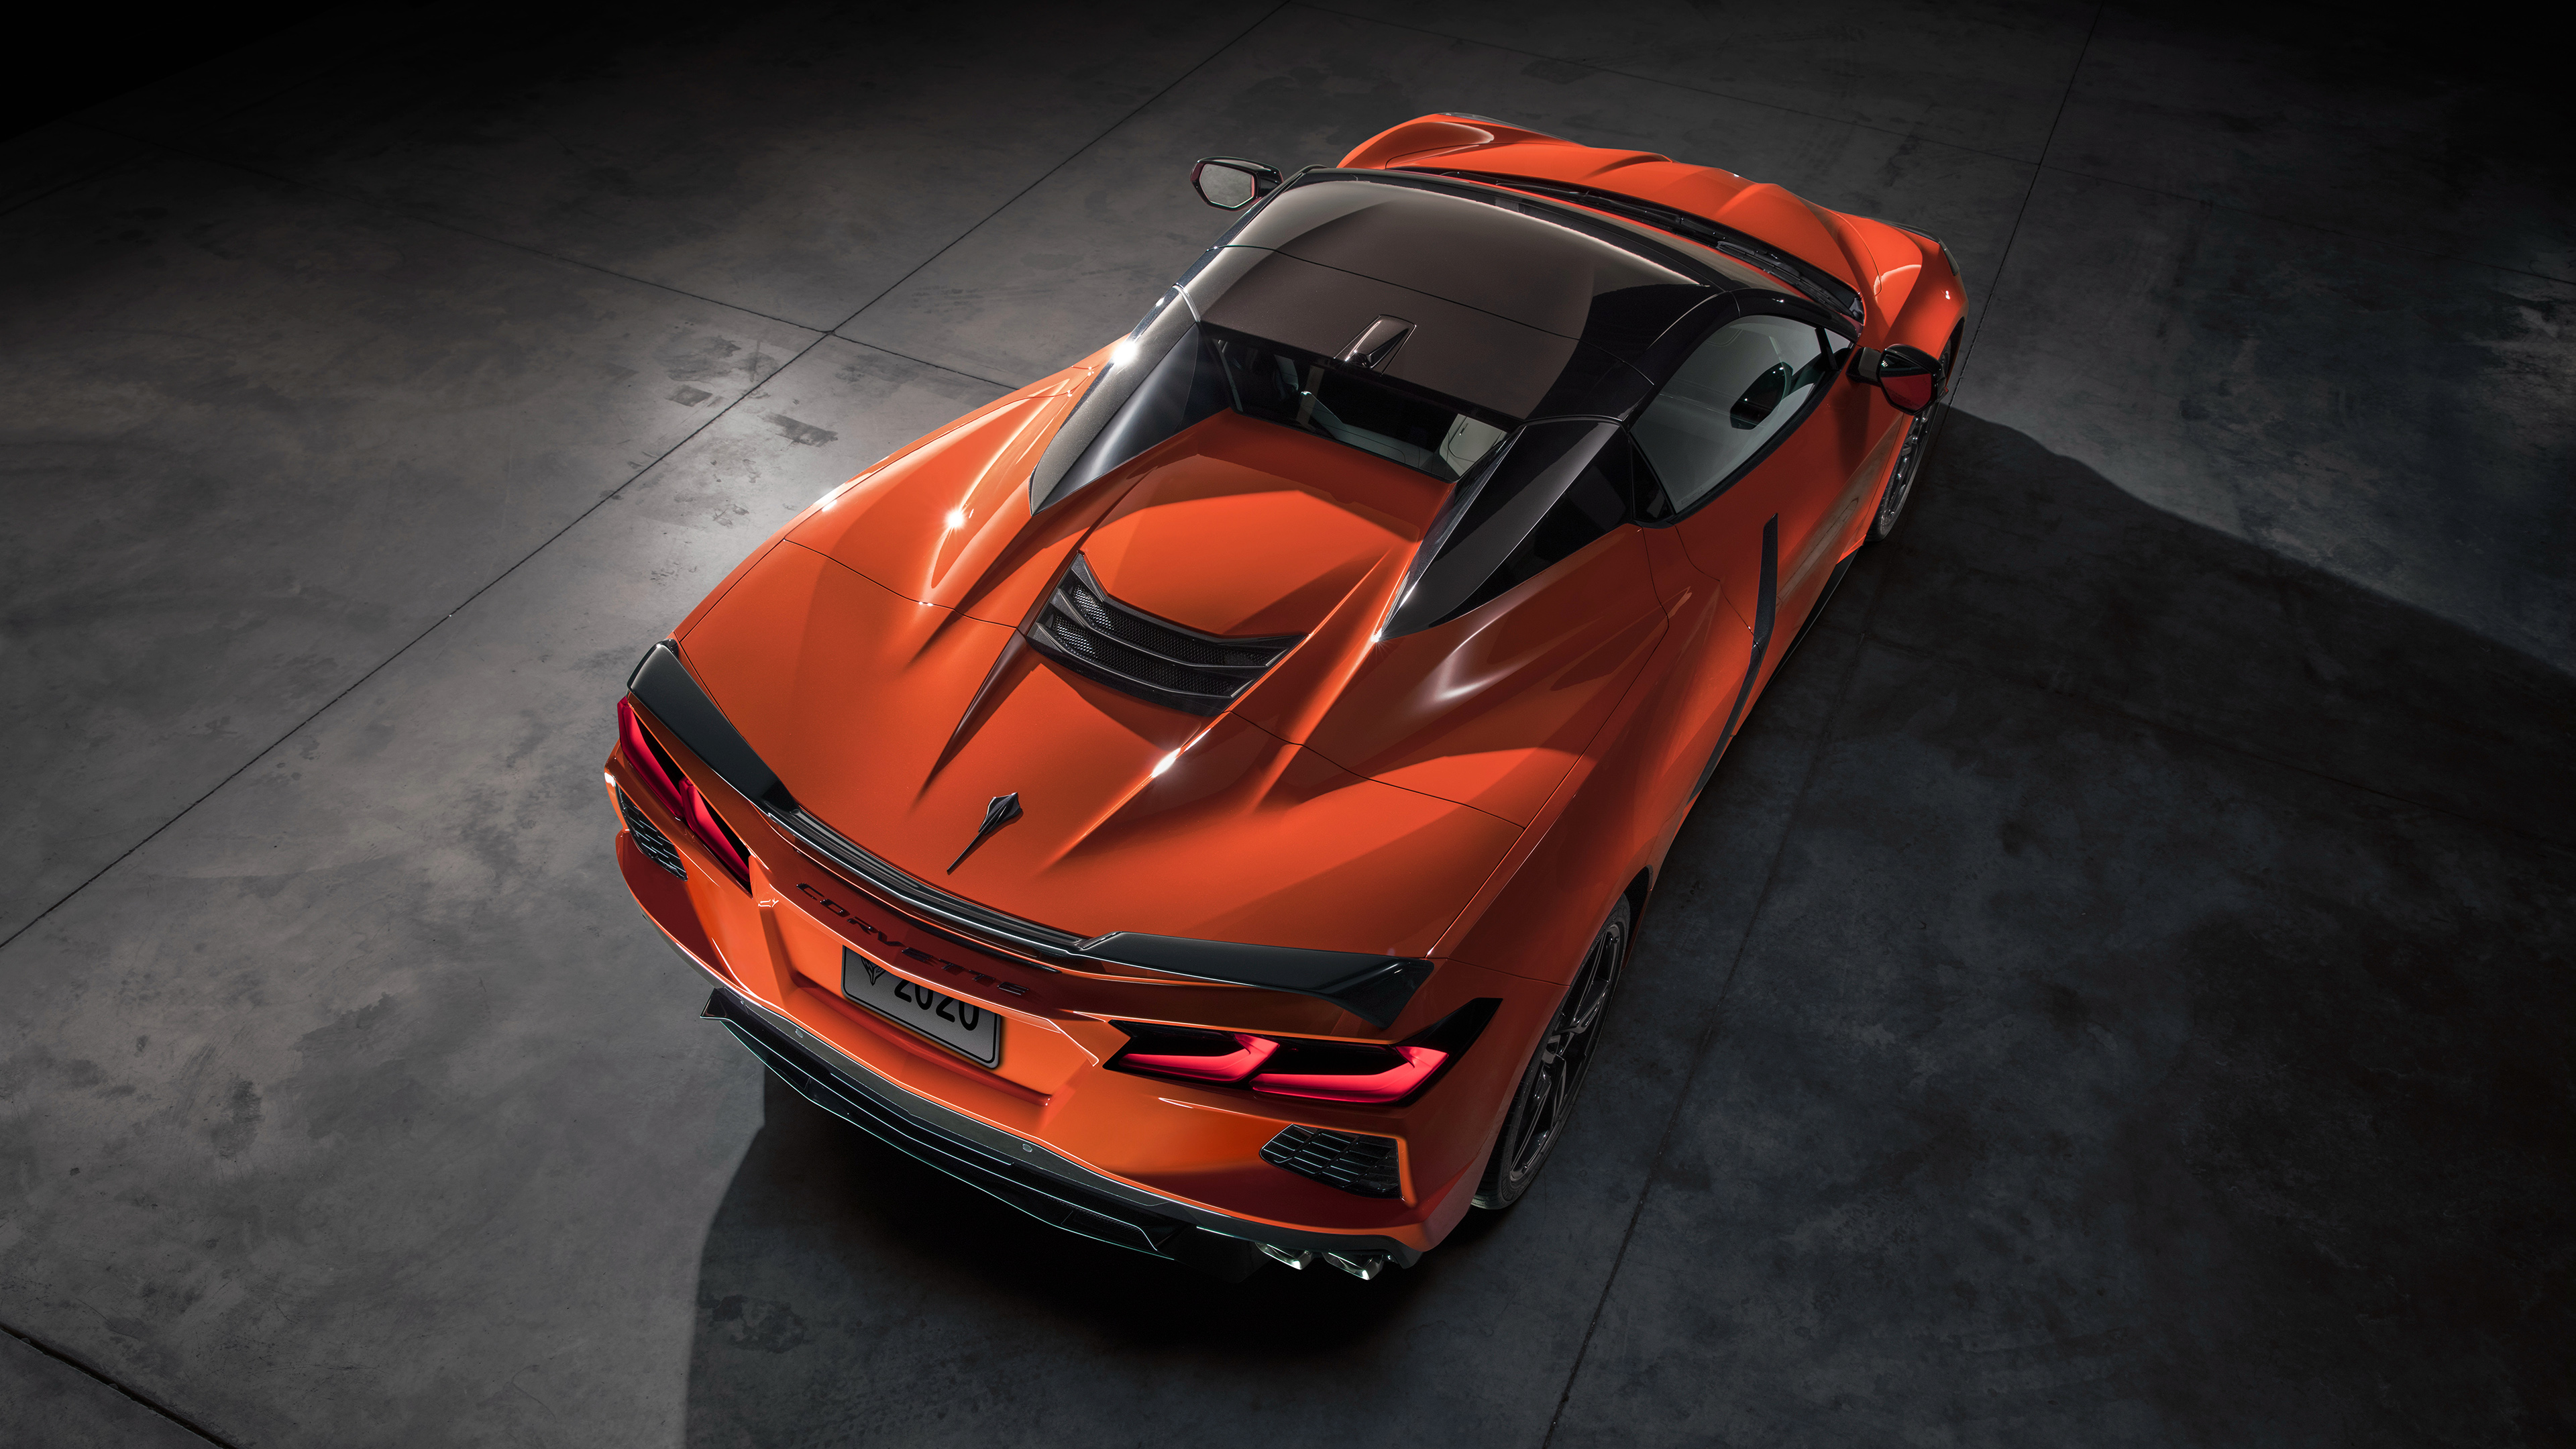 2020 Chevrolet Corvette Stingray Convertible Z51 4K 2 Wallpaper 3840x2160